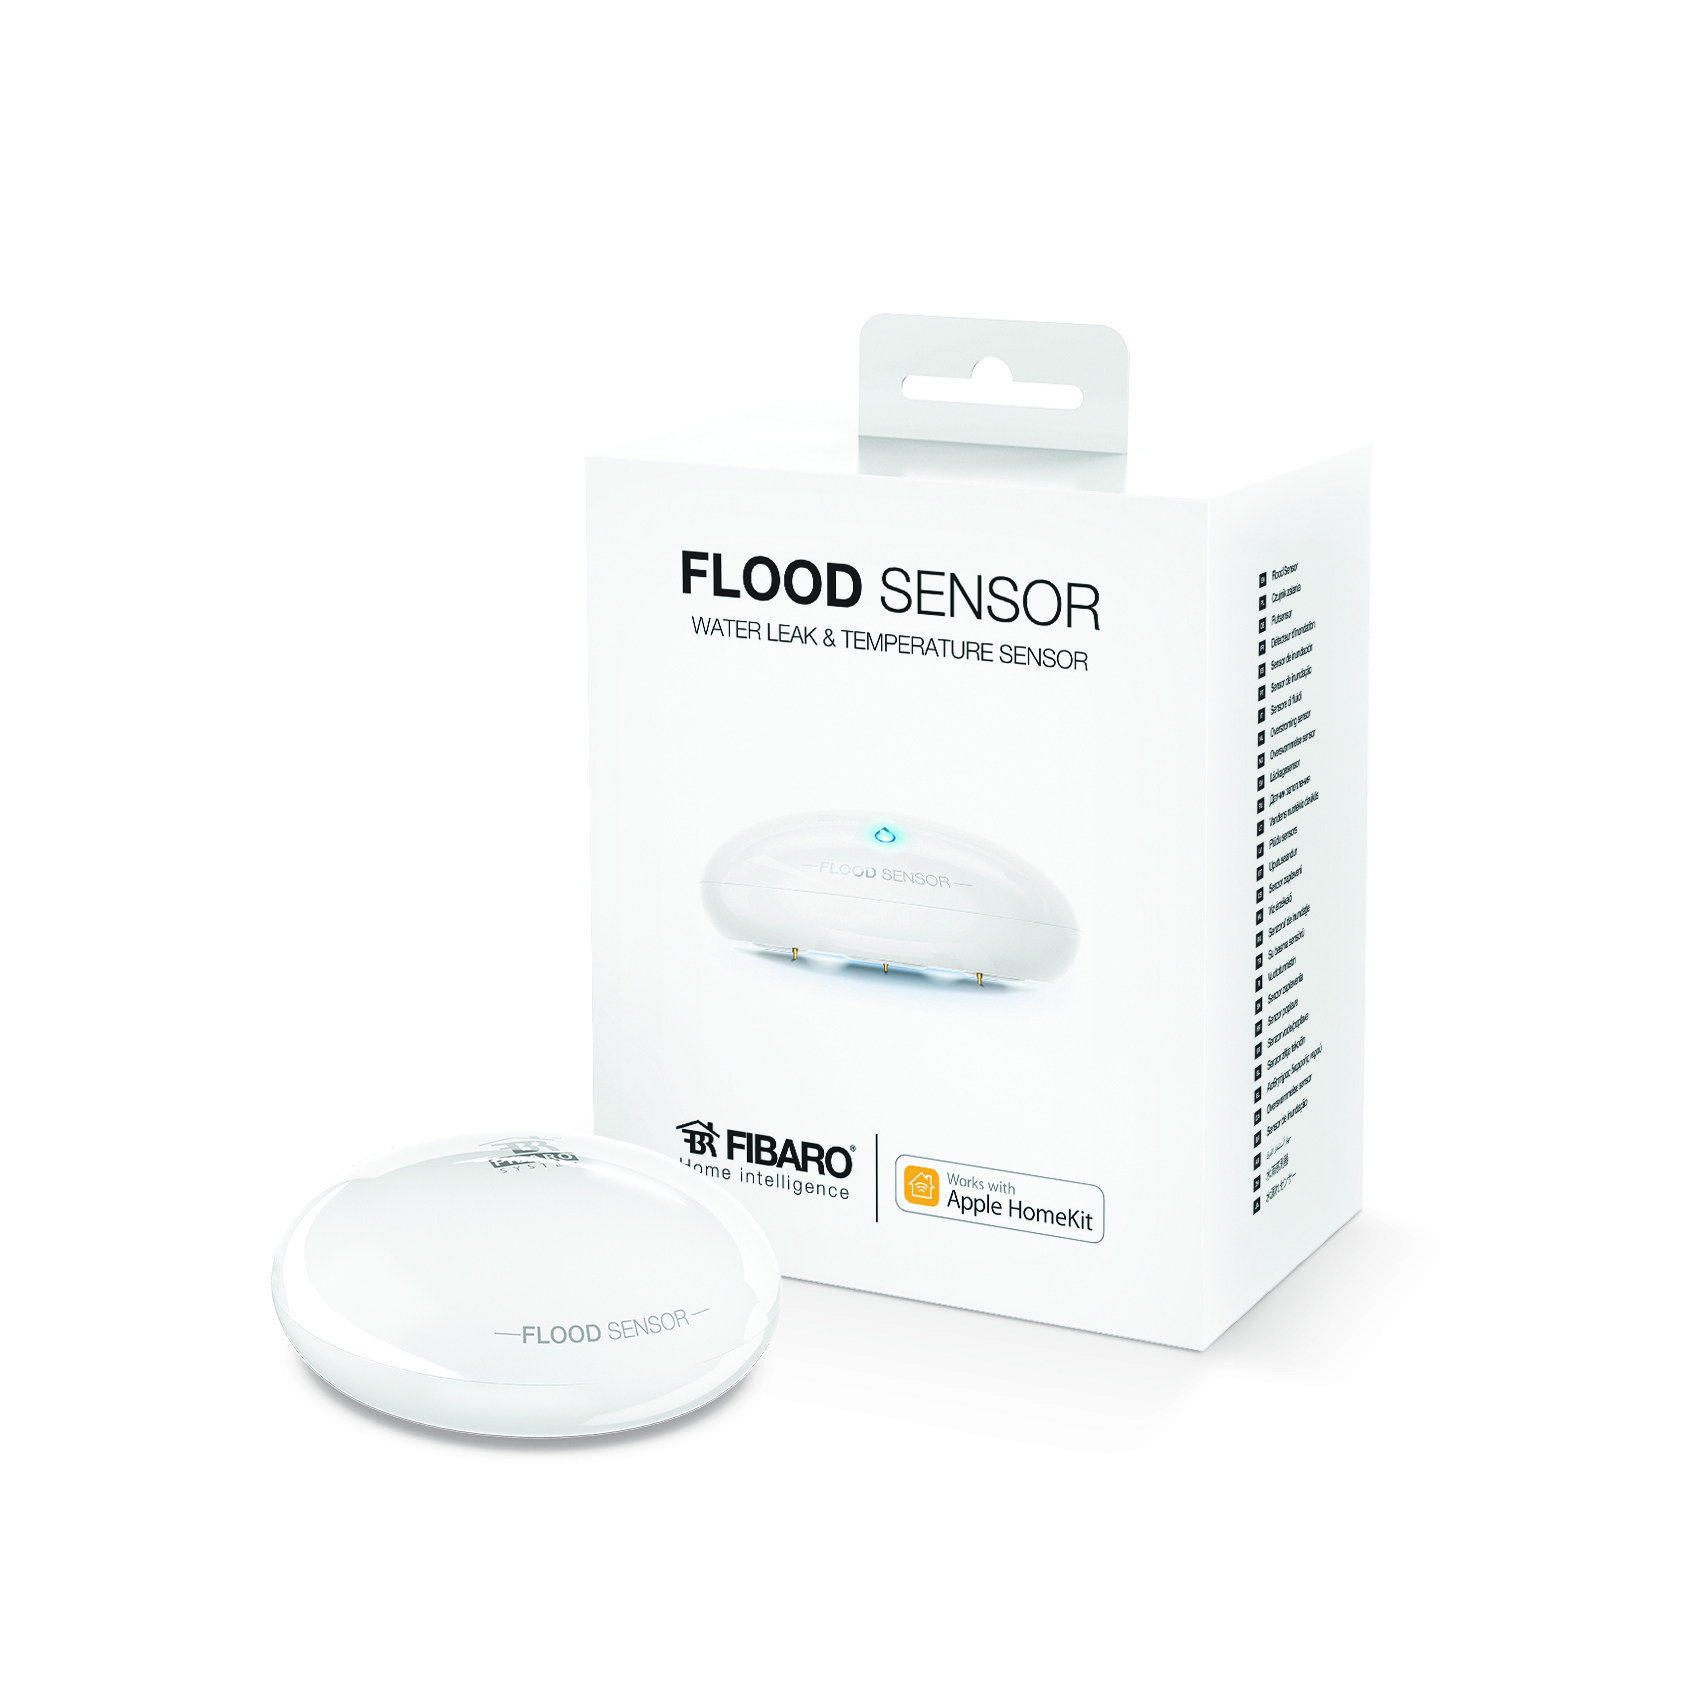 fibaro-homekit-flood-sensor-right.jpg